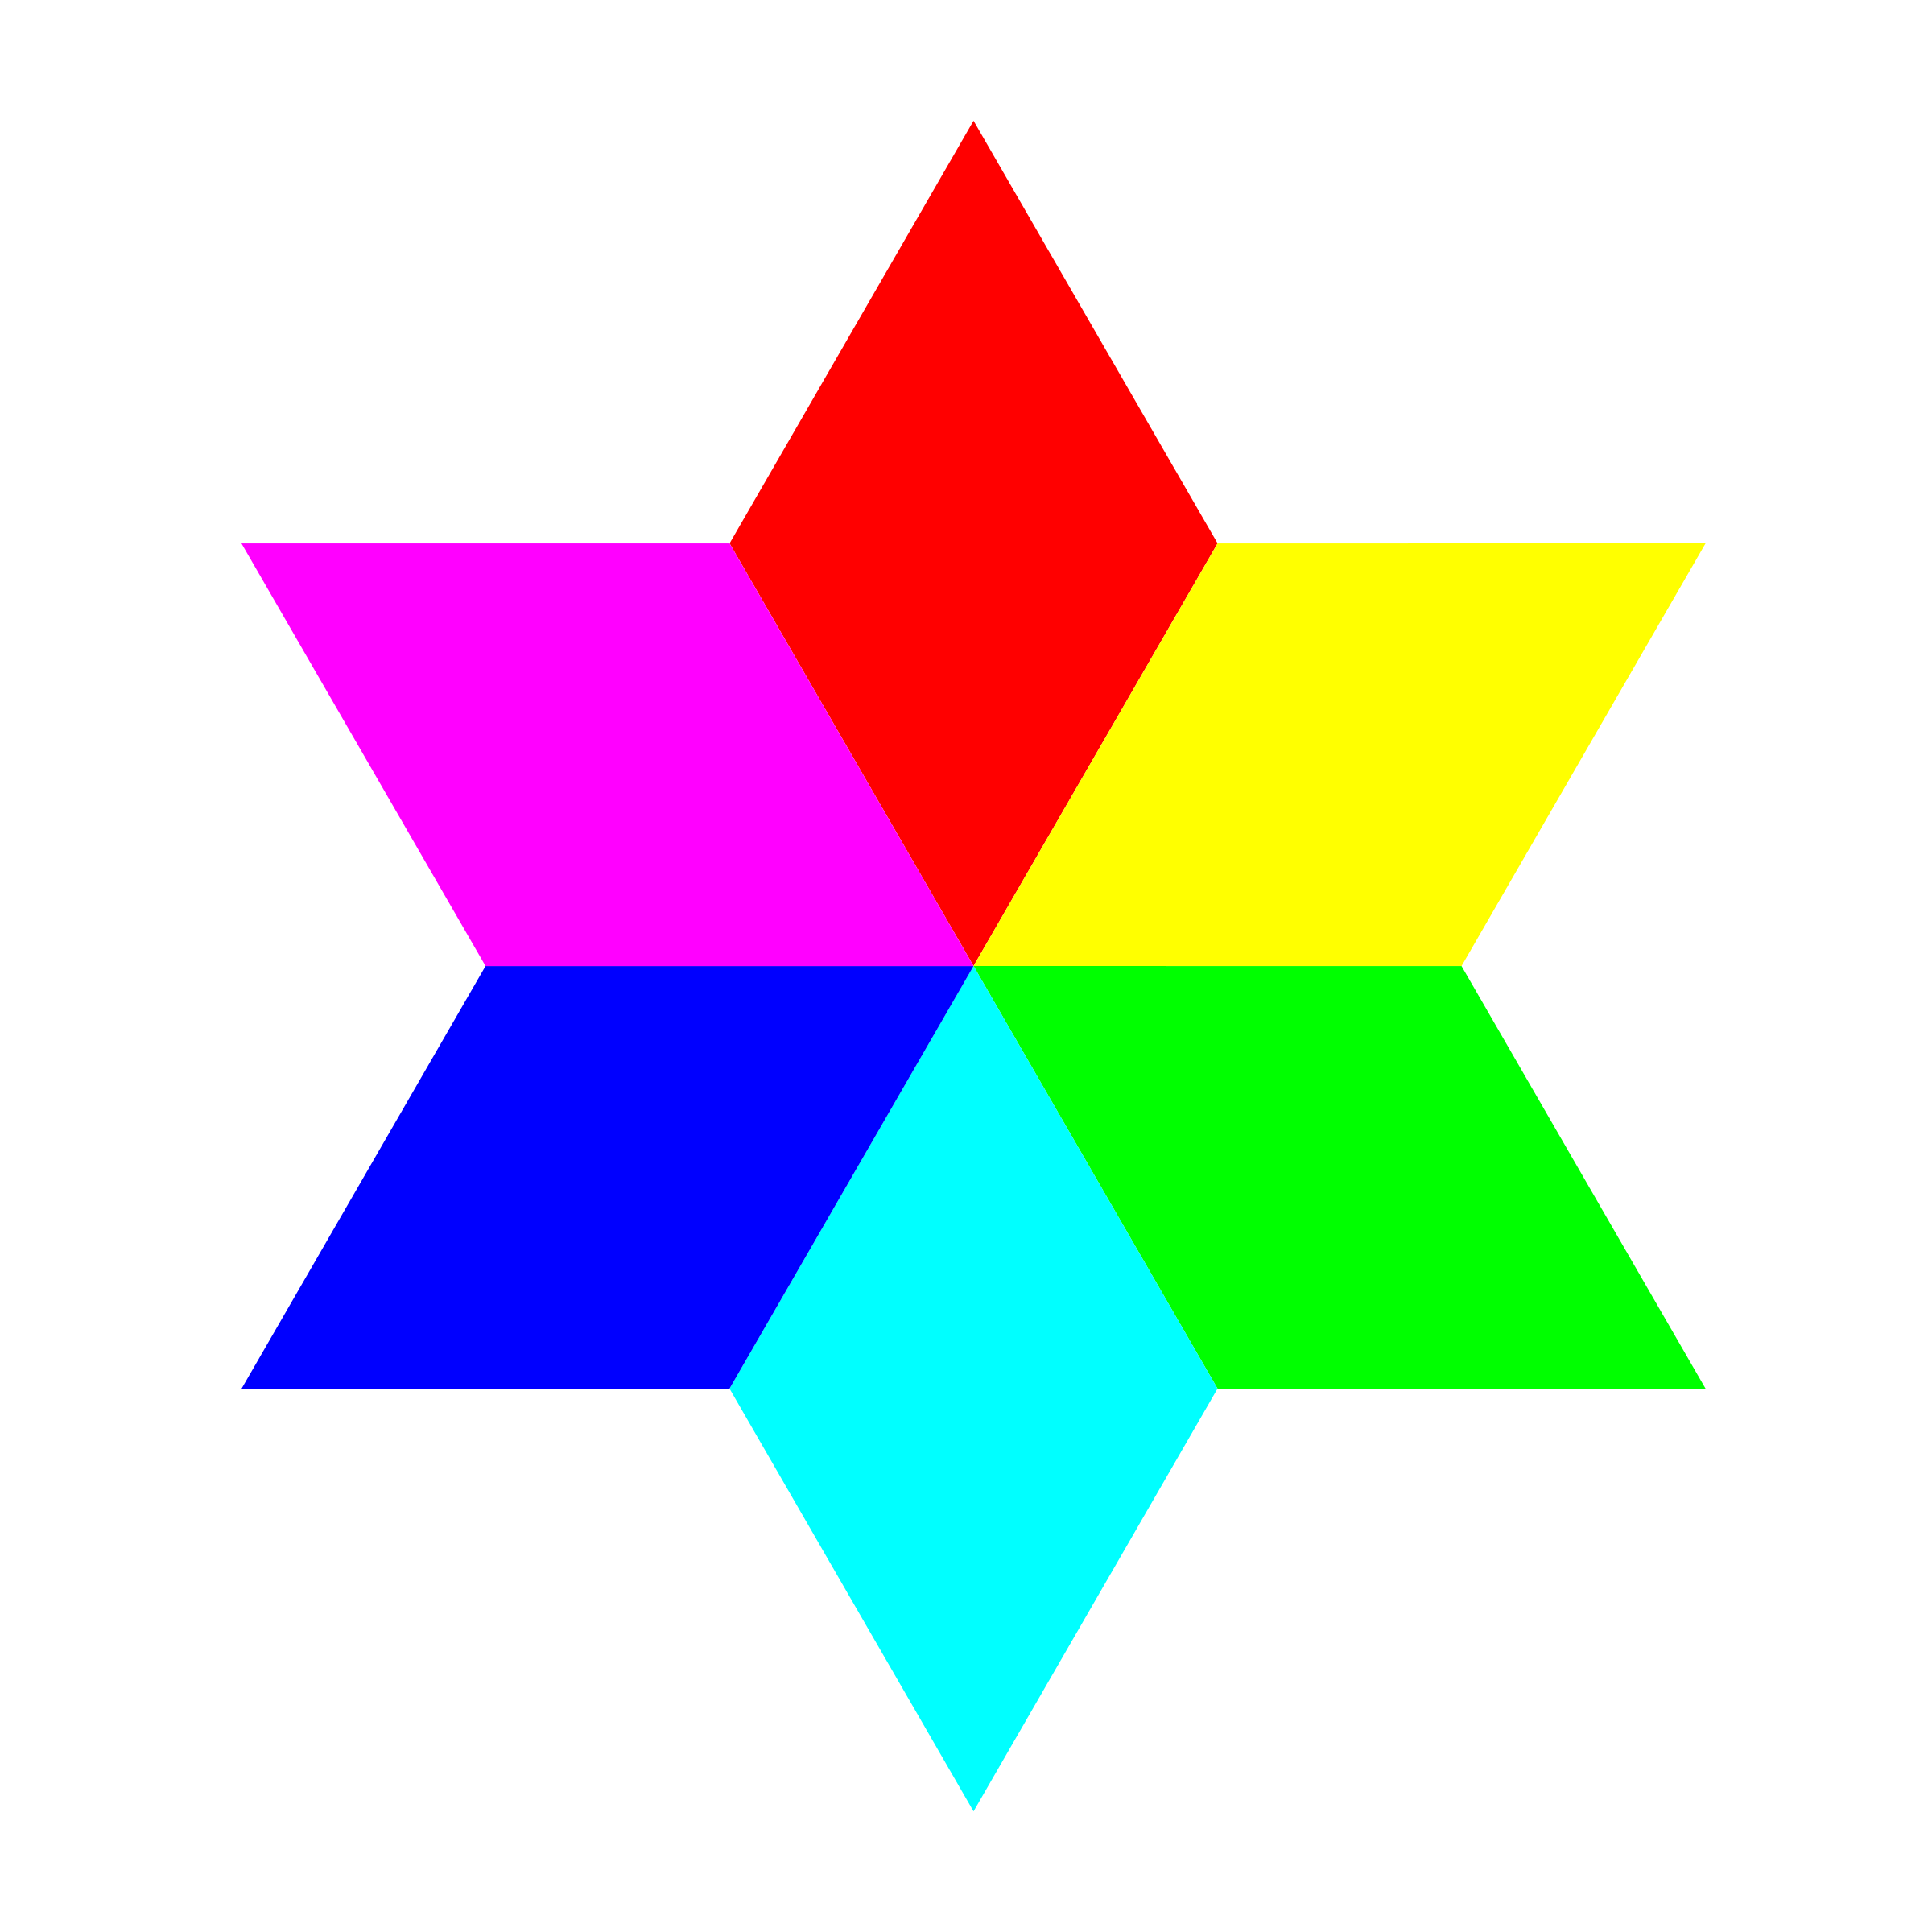 6 color diamond hexagram by 10binary